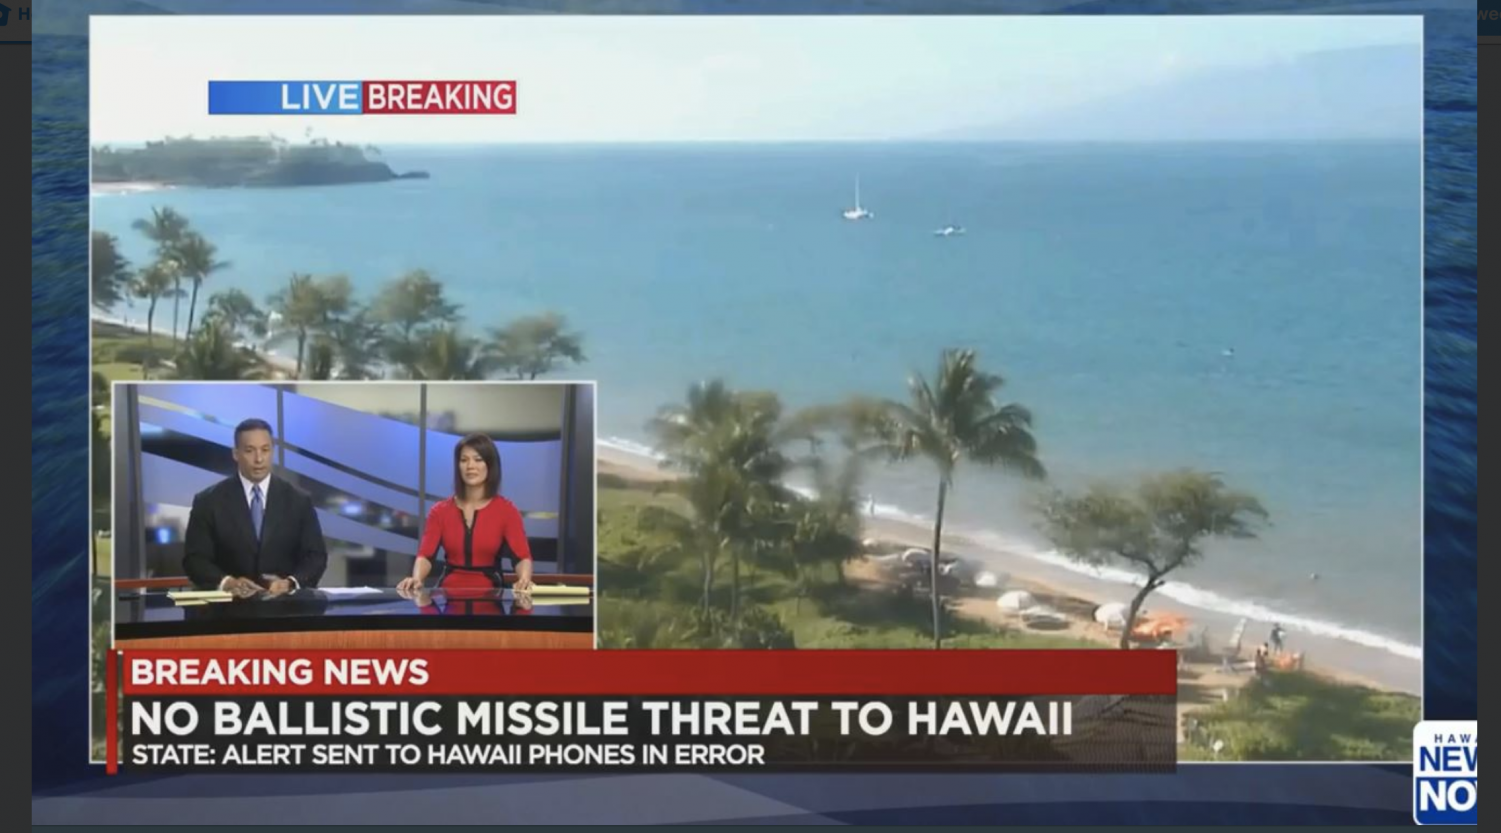 Hawaiʻi News Now promotes their coverage of the false ballistic threat alarm via Twitter after human error resulted in a statewide alert Saturday, Jan. 13, at 8:07 a.m. HST. State agencies were quickly criticized in the social and mainstream media not only for the error itself, but also for the length of time it took to clear it up and the means by which information was communicated to residents.